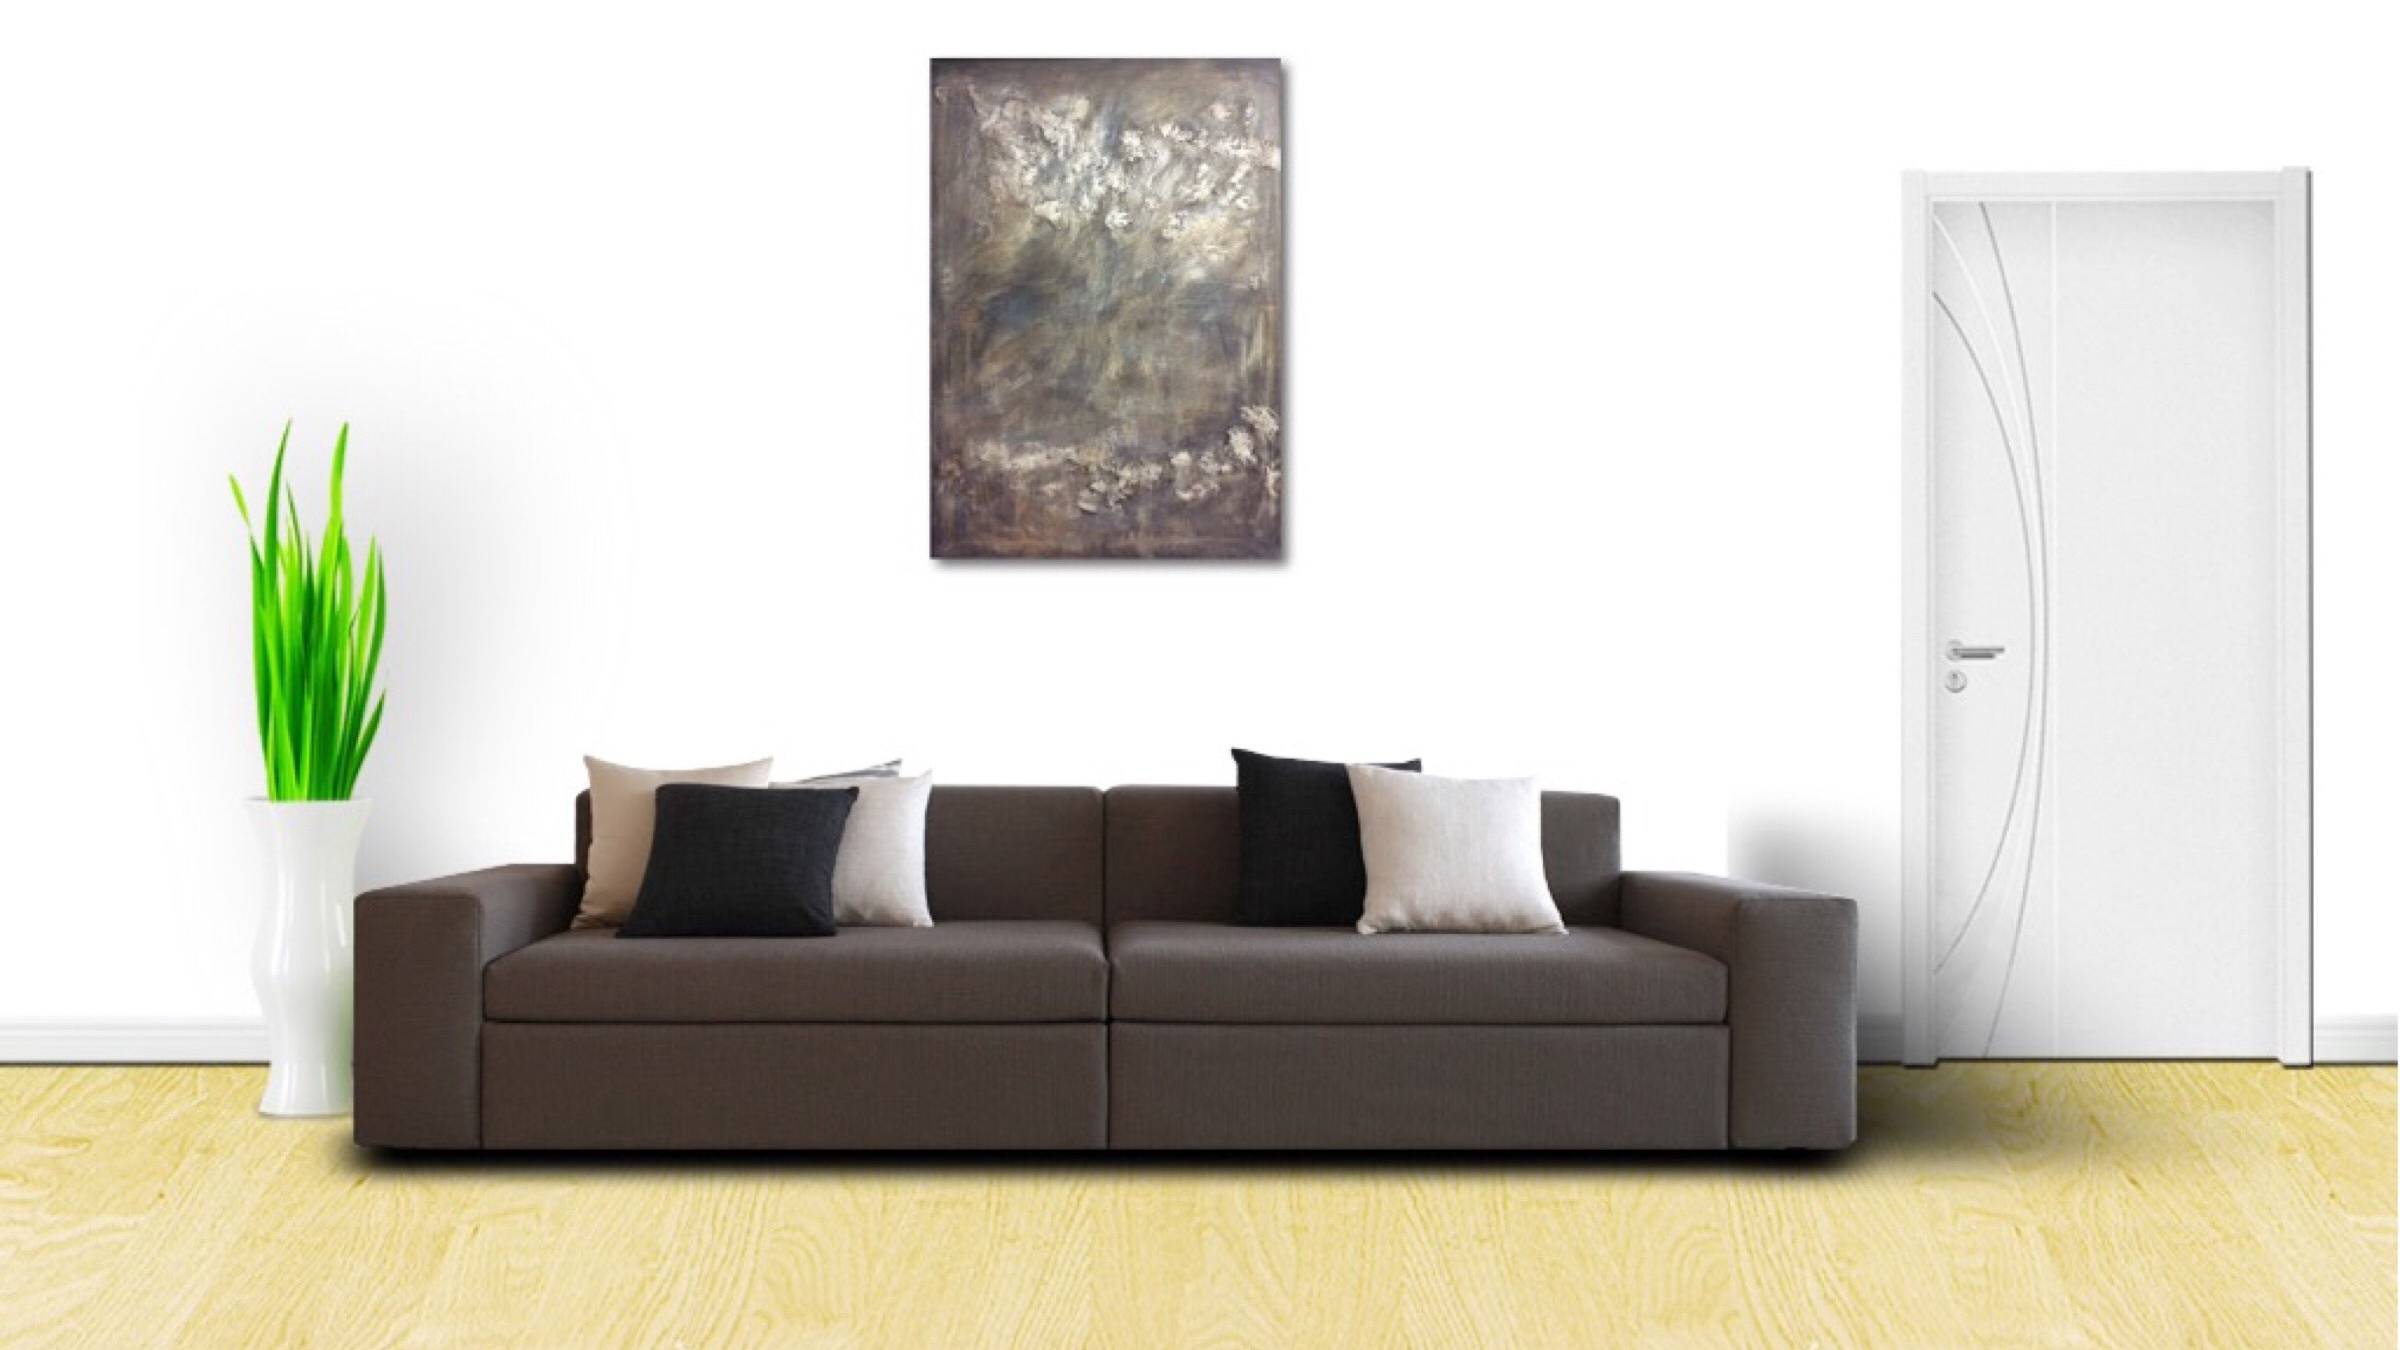 Interior design: Textured abstract painting in dark tones